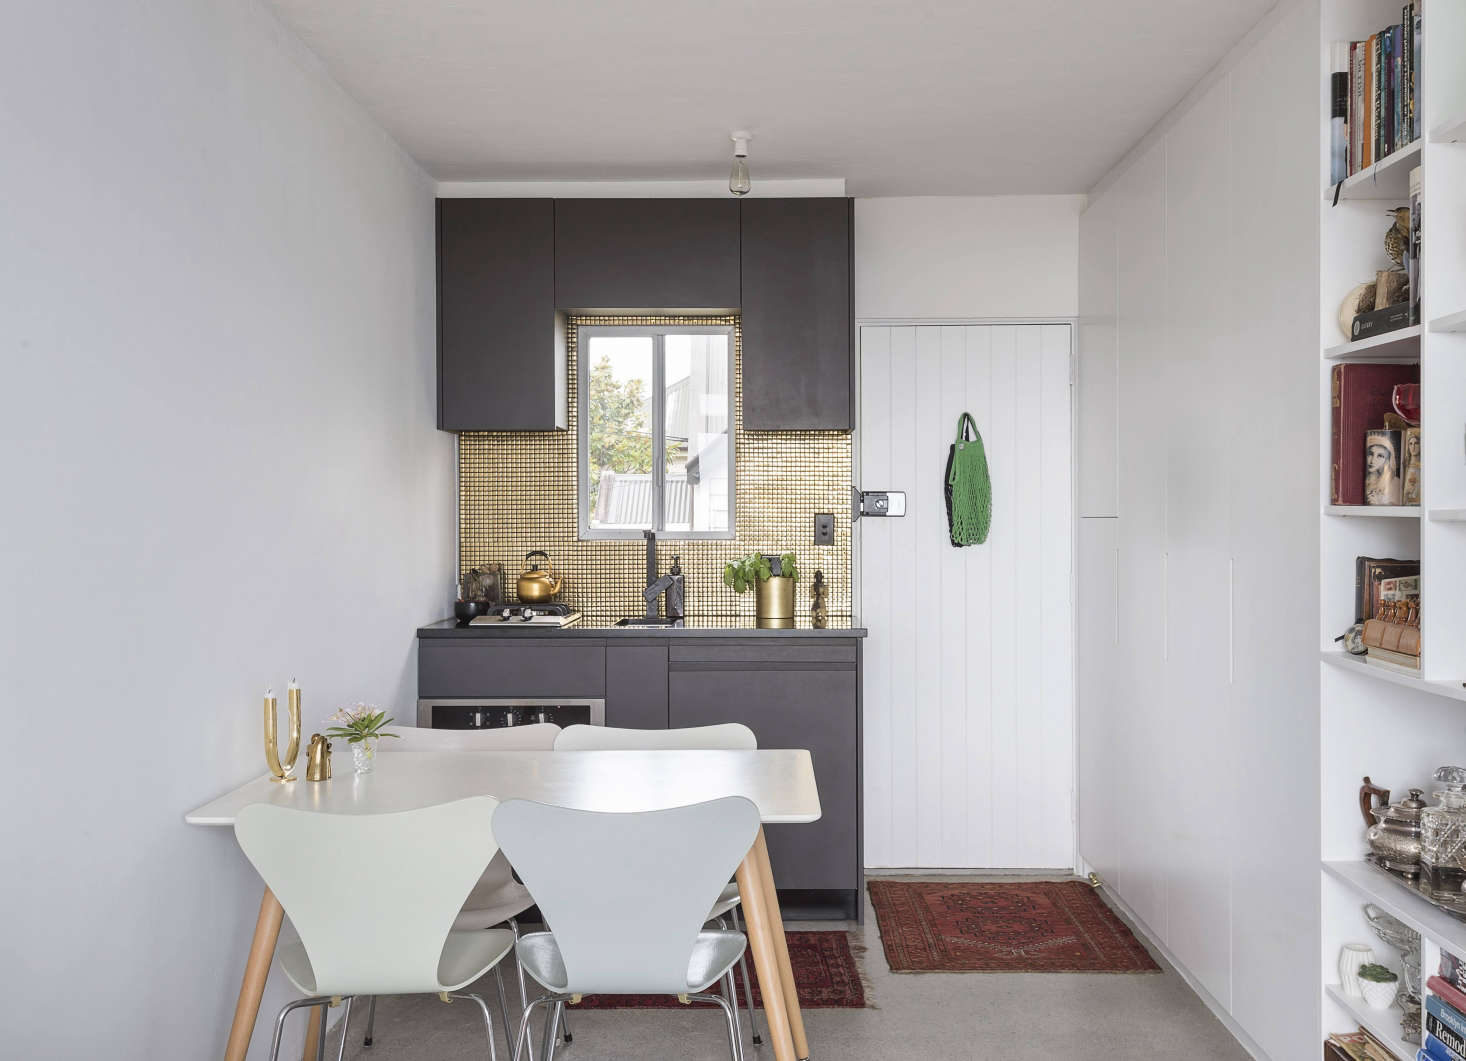 Expert Advice: The New Kitchenette: 11 Tips for an Efficient ...